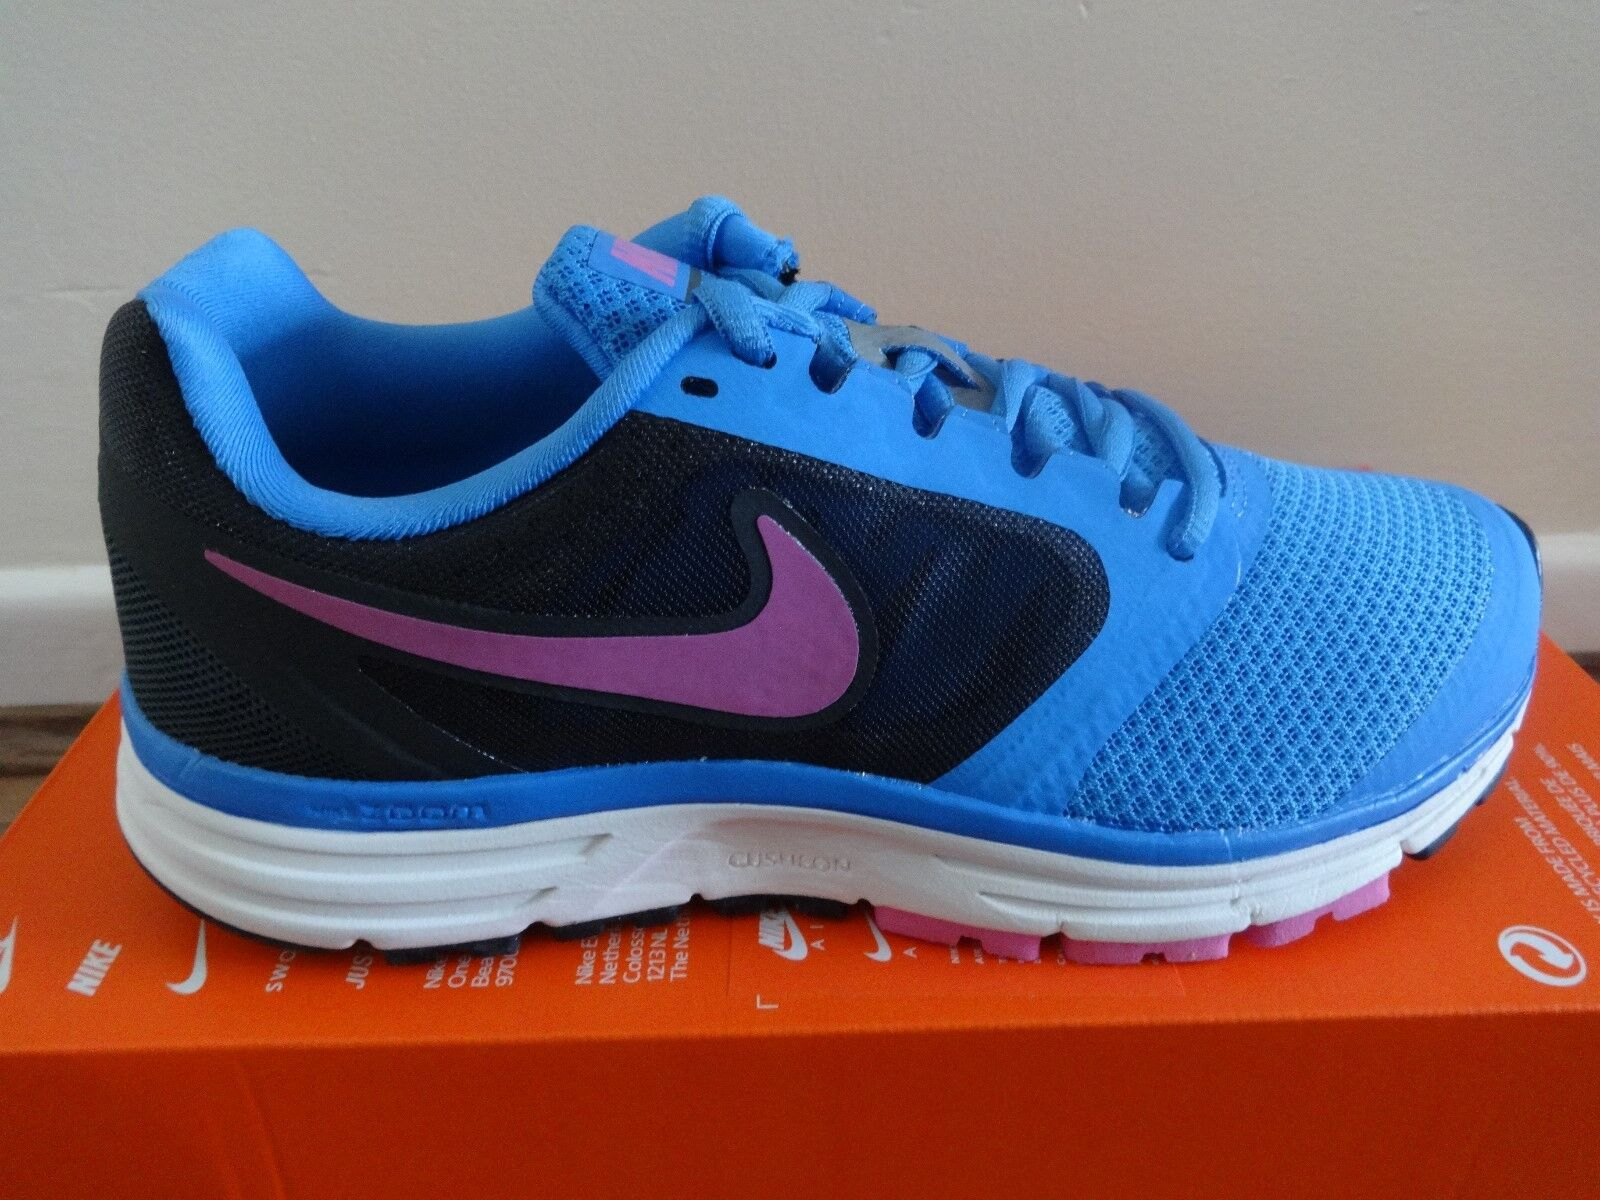 Nike womens Zoom Vomero +8 580593 womens trainers sneakers shoes 580593 +8 460 NEW+BOX 090030